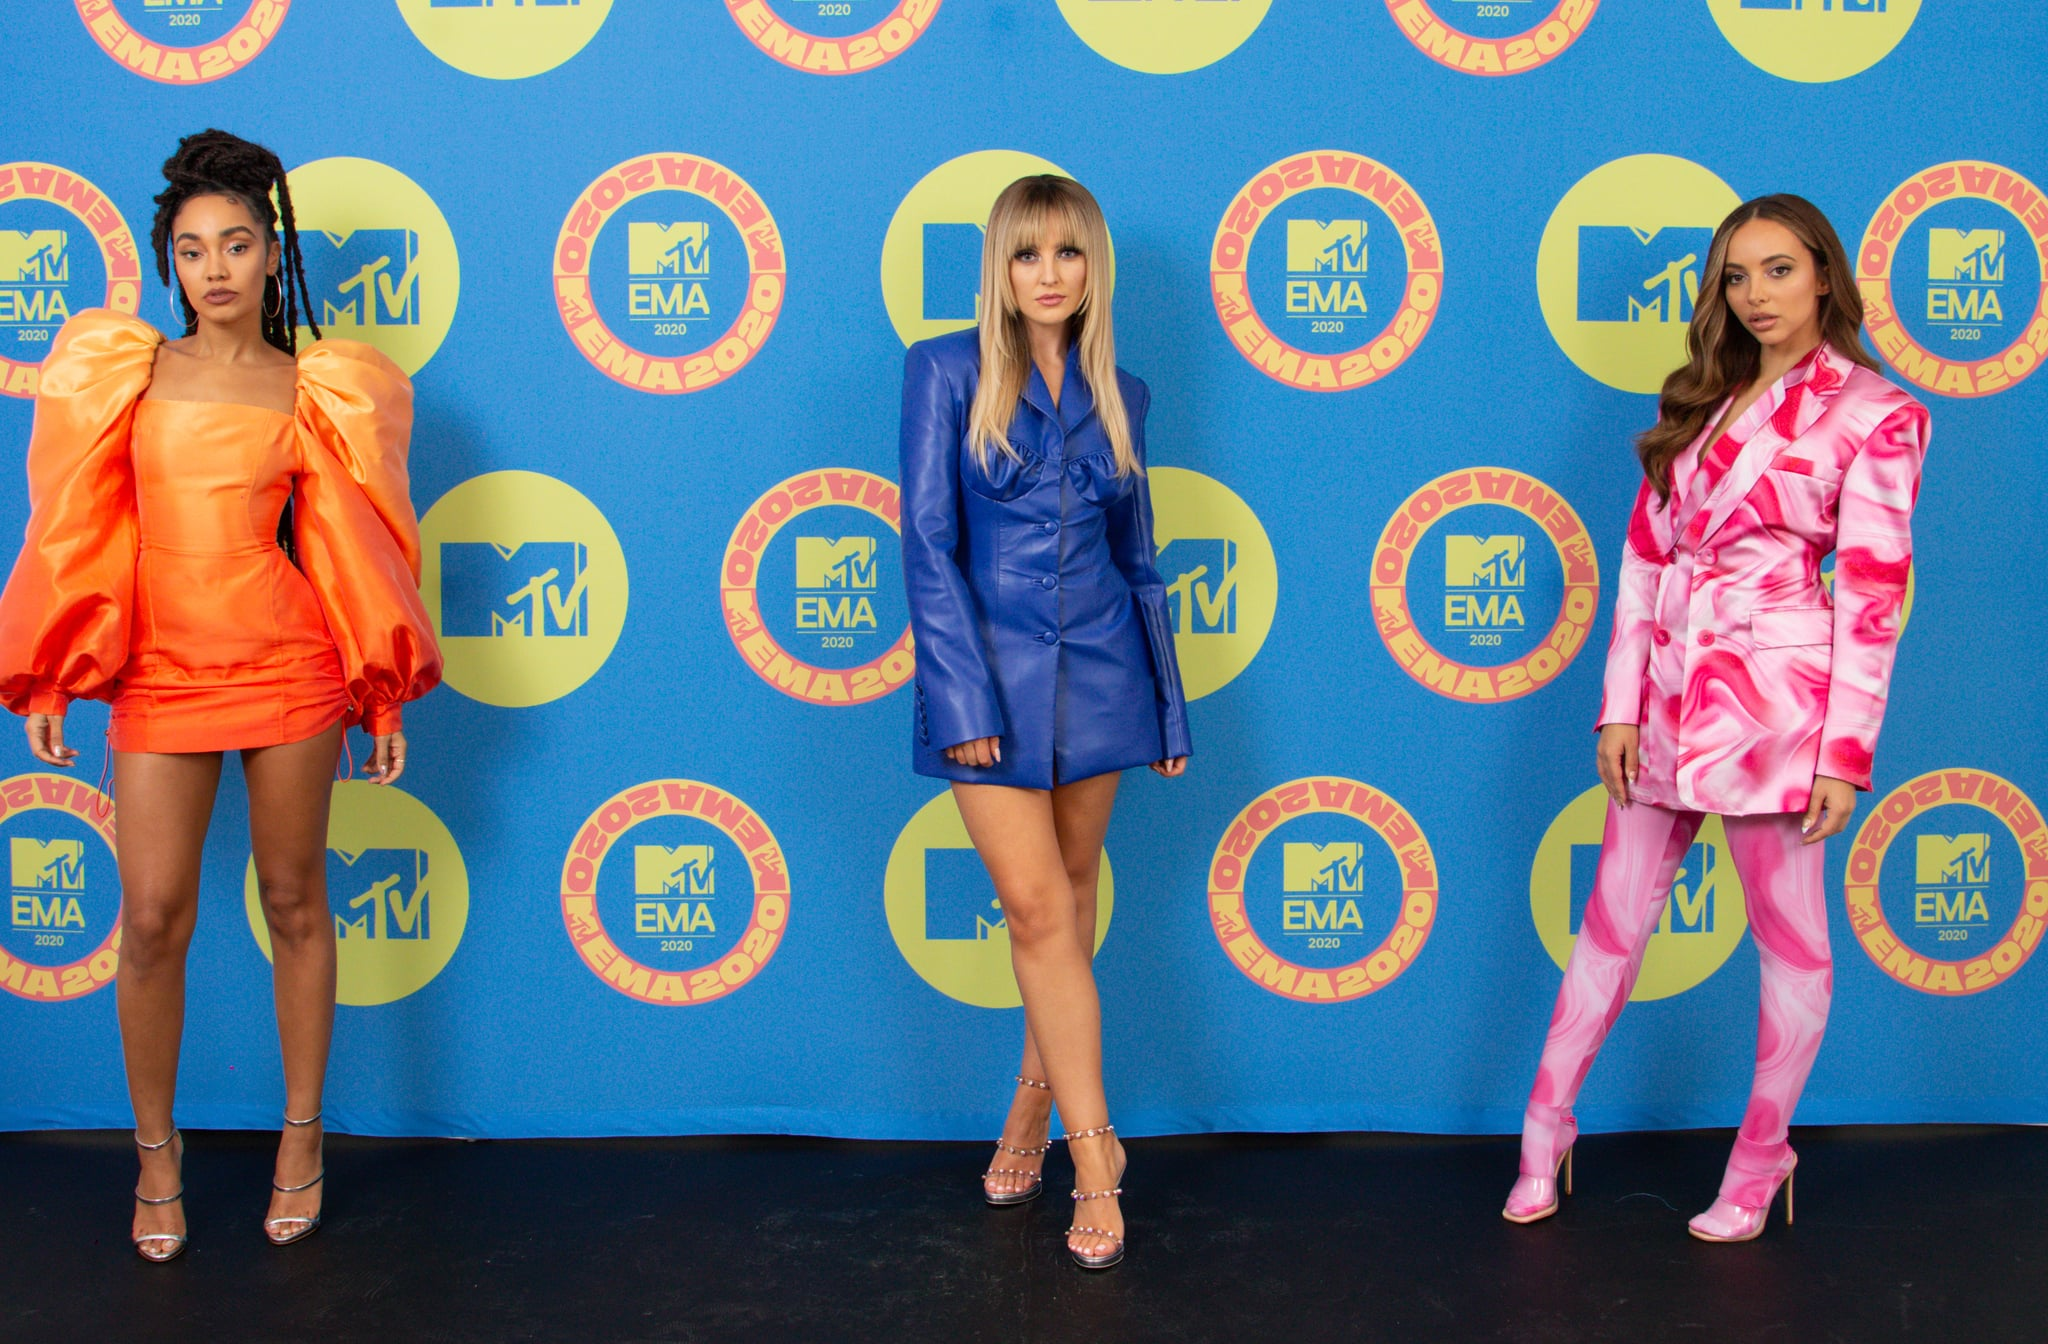 LONDON, ENGLAND - NOVEMBER 01: In this image released on November 08, (L-R) Leigh-Anne Pinnock, Perrie Edwards and Jade Thirlwall of Little Mix poses ahead of the MTV EMA's 2020 on November 01, 2020 in London, England. The MTV EMA's aired on November 08, 2020. (Photo by Callum Mills via Getty Images for MTV)